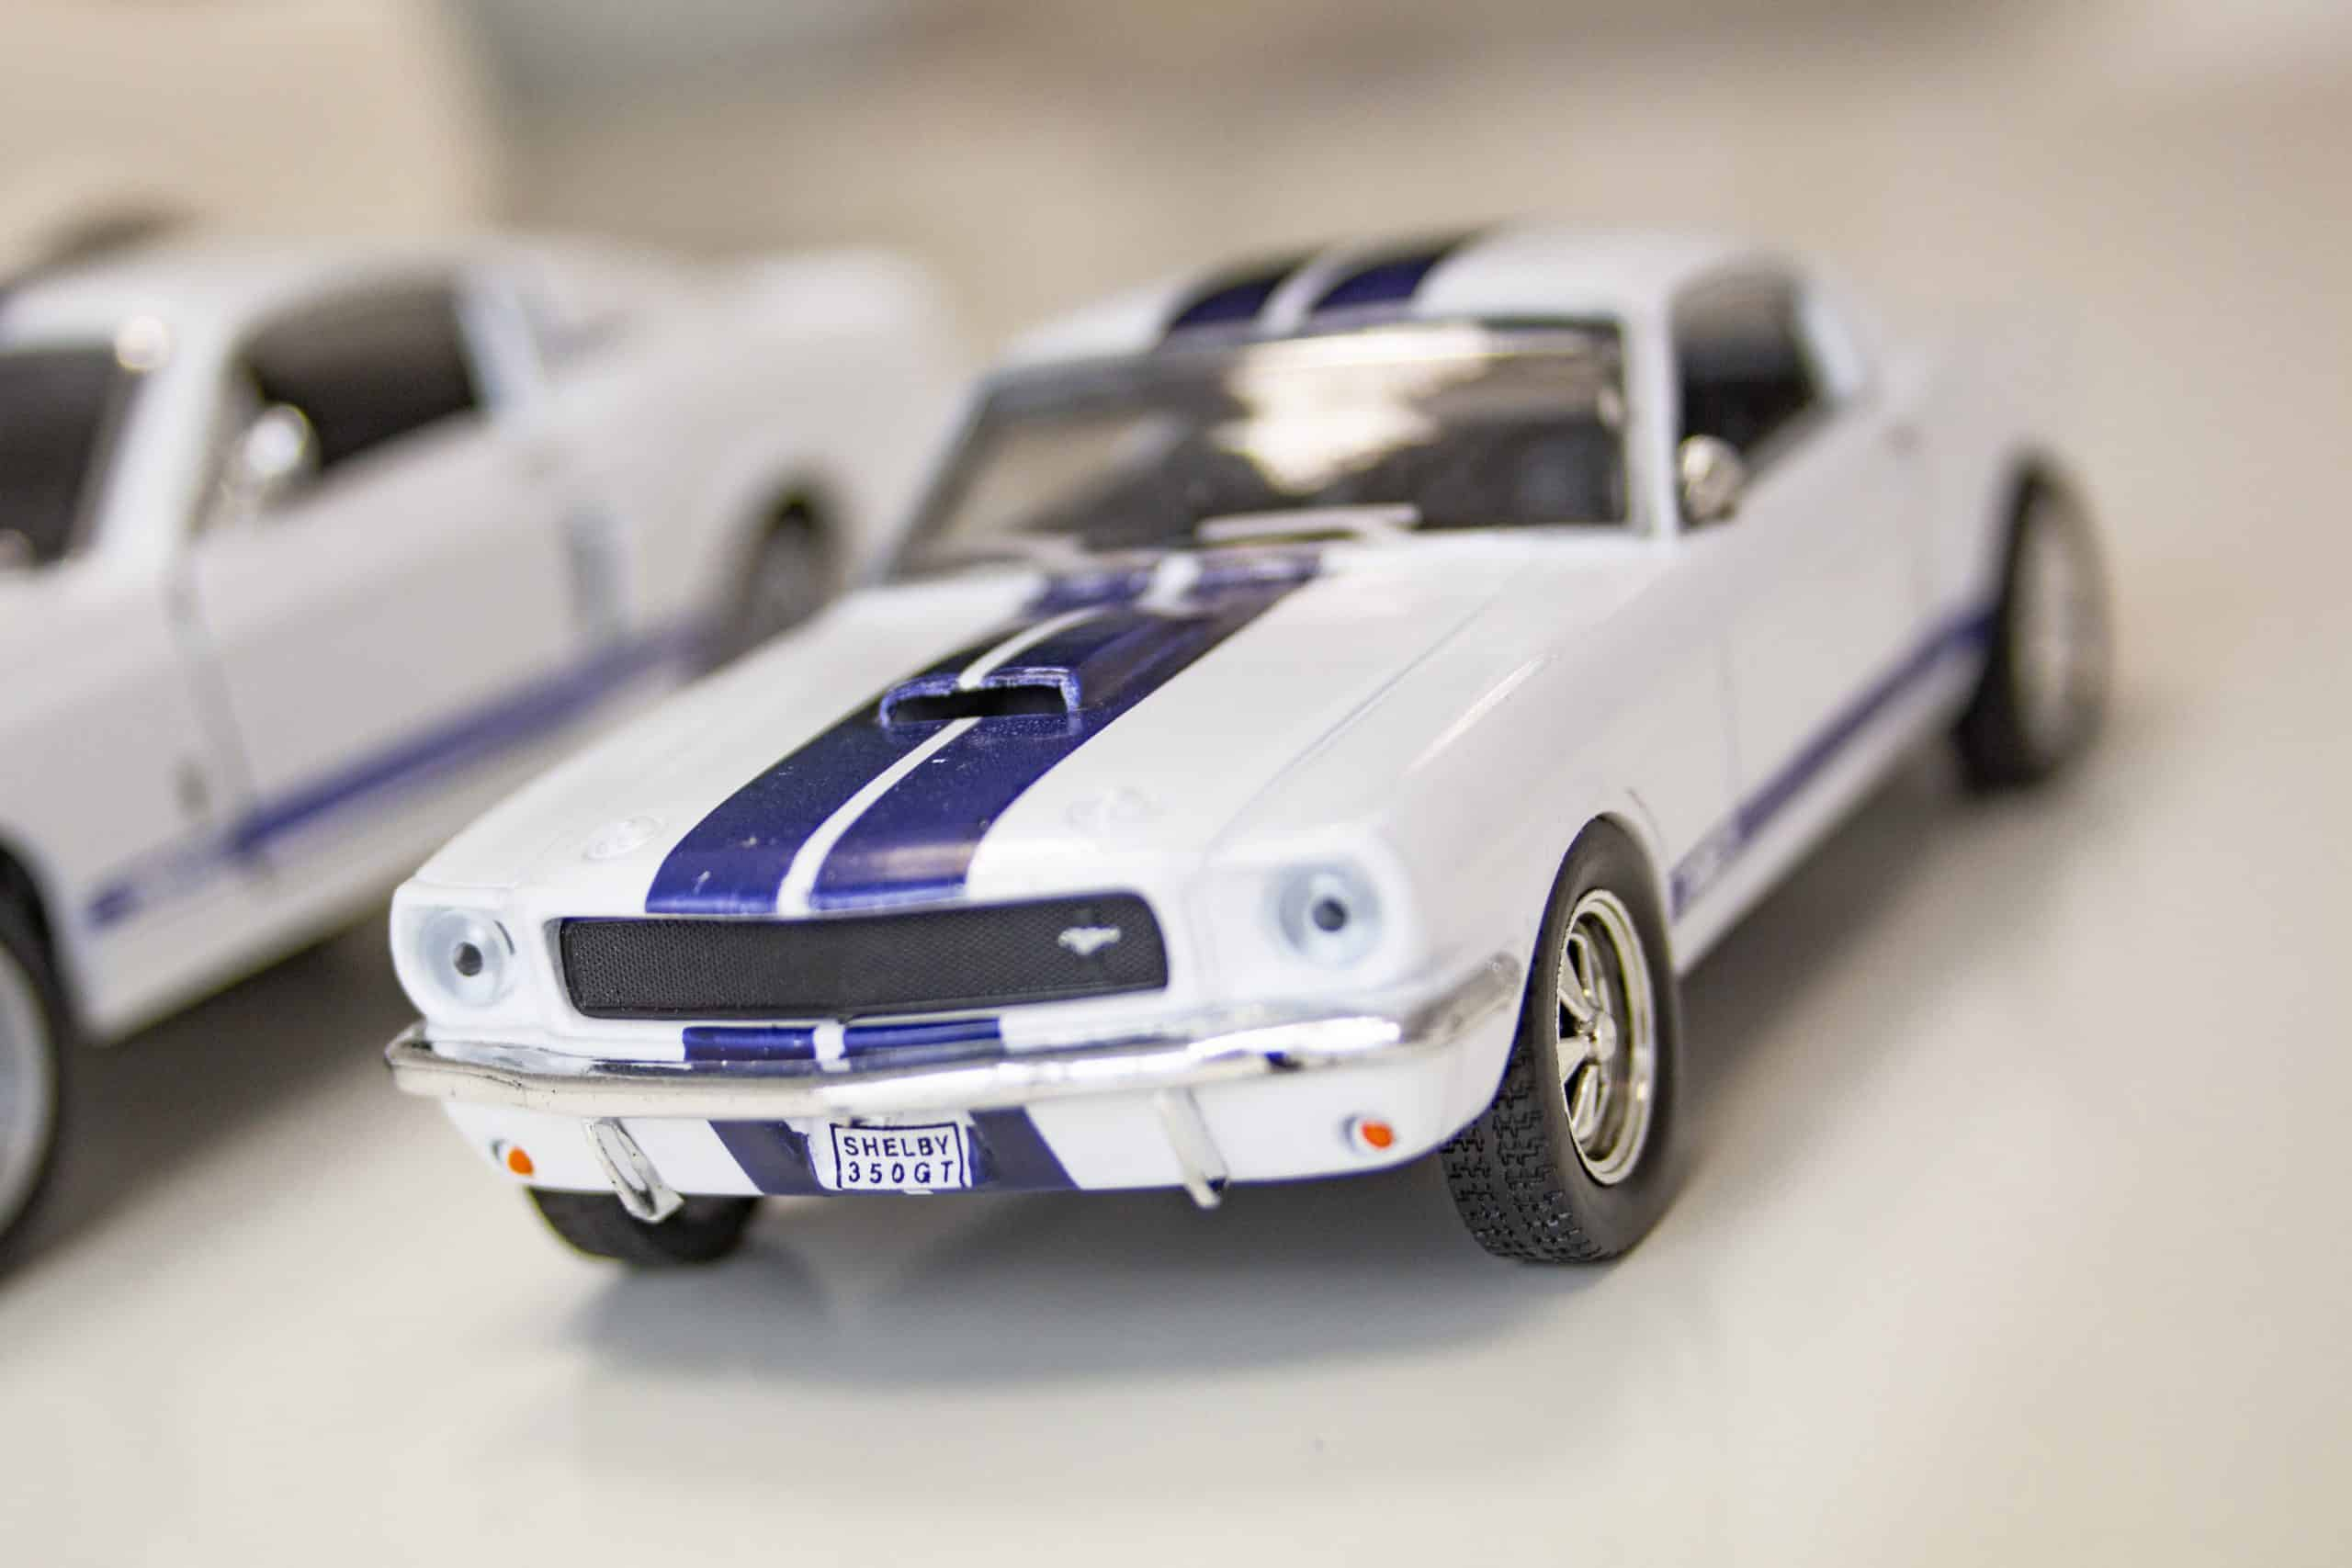 Shelby GT350 at 1:43 scale